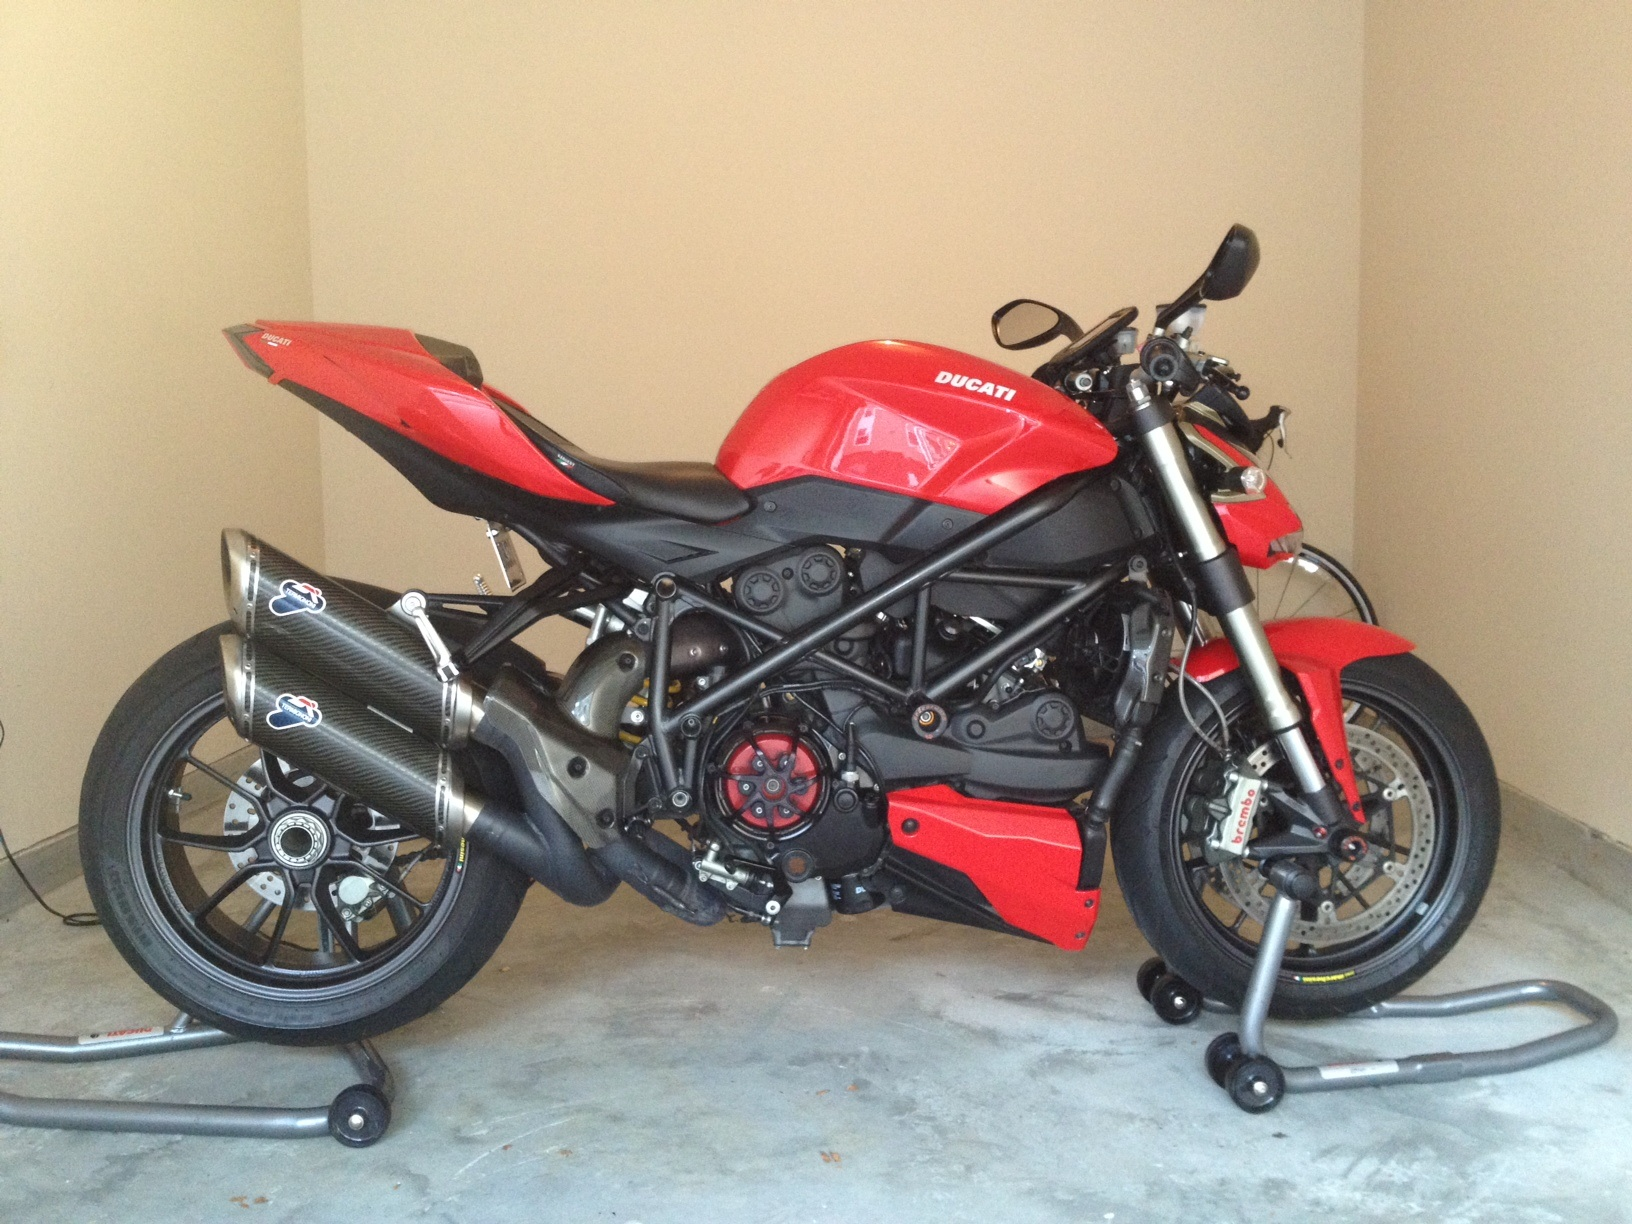 Ducati Panigale Streetfighter For Sale – Motorcycle Image Ideas